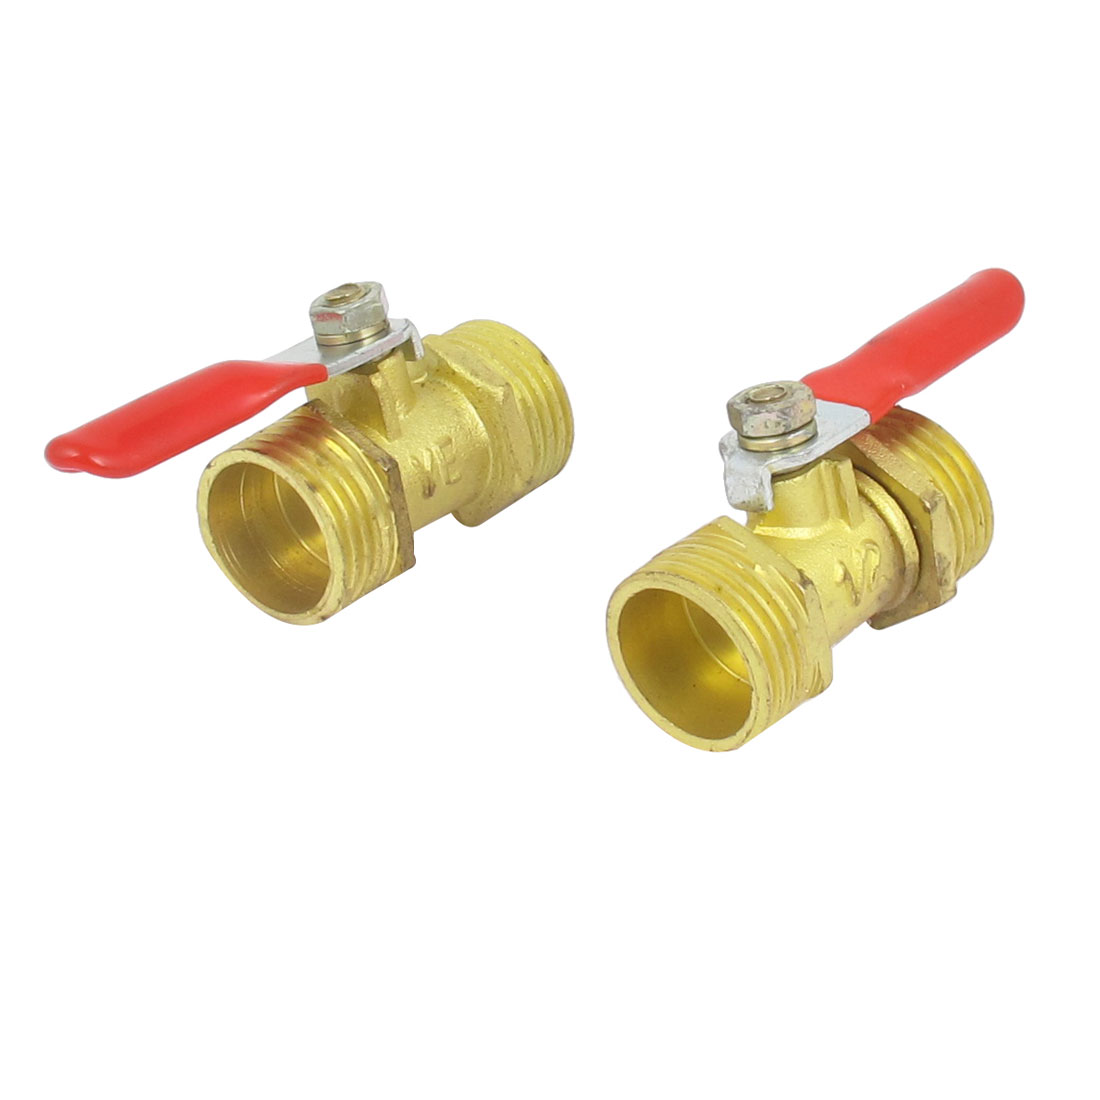 1/2BSP Male to 1/2BSP Male Thread Pneumatic Gas Ball Valve 2pcs